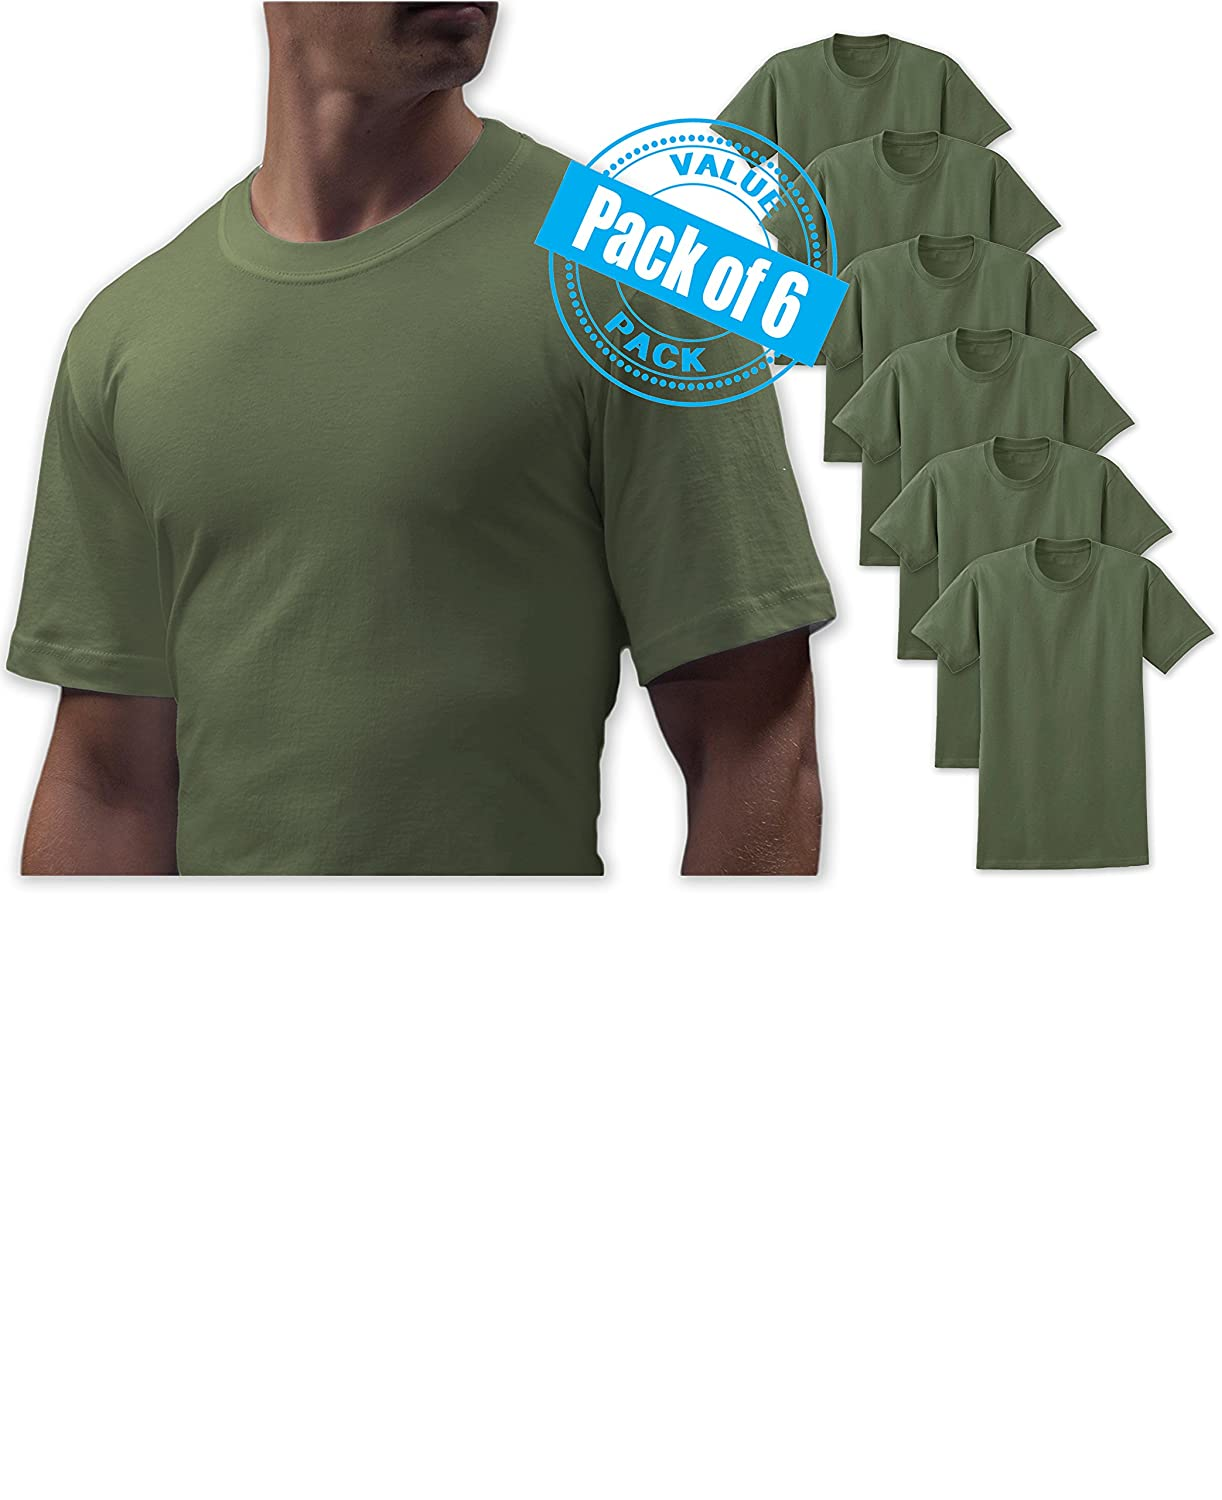 8d35a316d185c ... 100% Combed Cotton Lightweight Crew Neck T Shirts for Big Men Army  Military Camo Green Soft Cotton Fabric is Light enough for Undershirt or  Active Wear